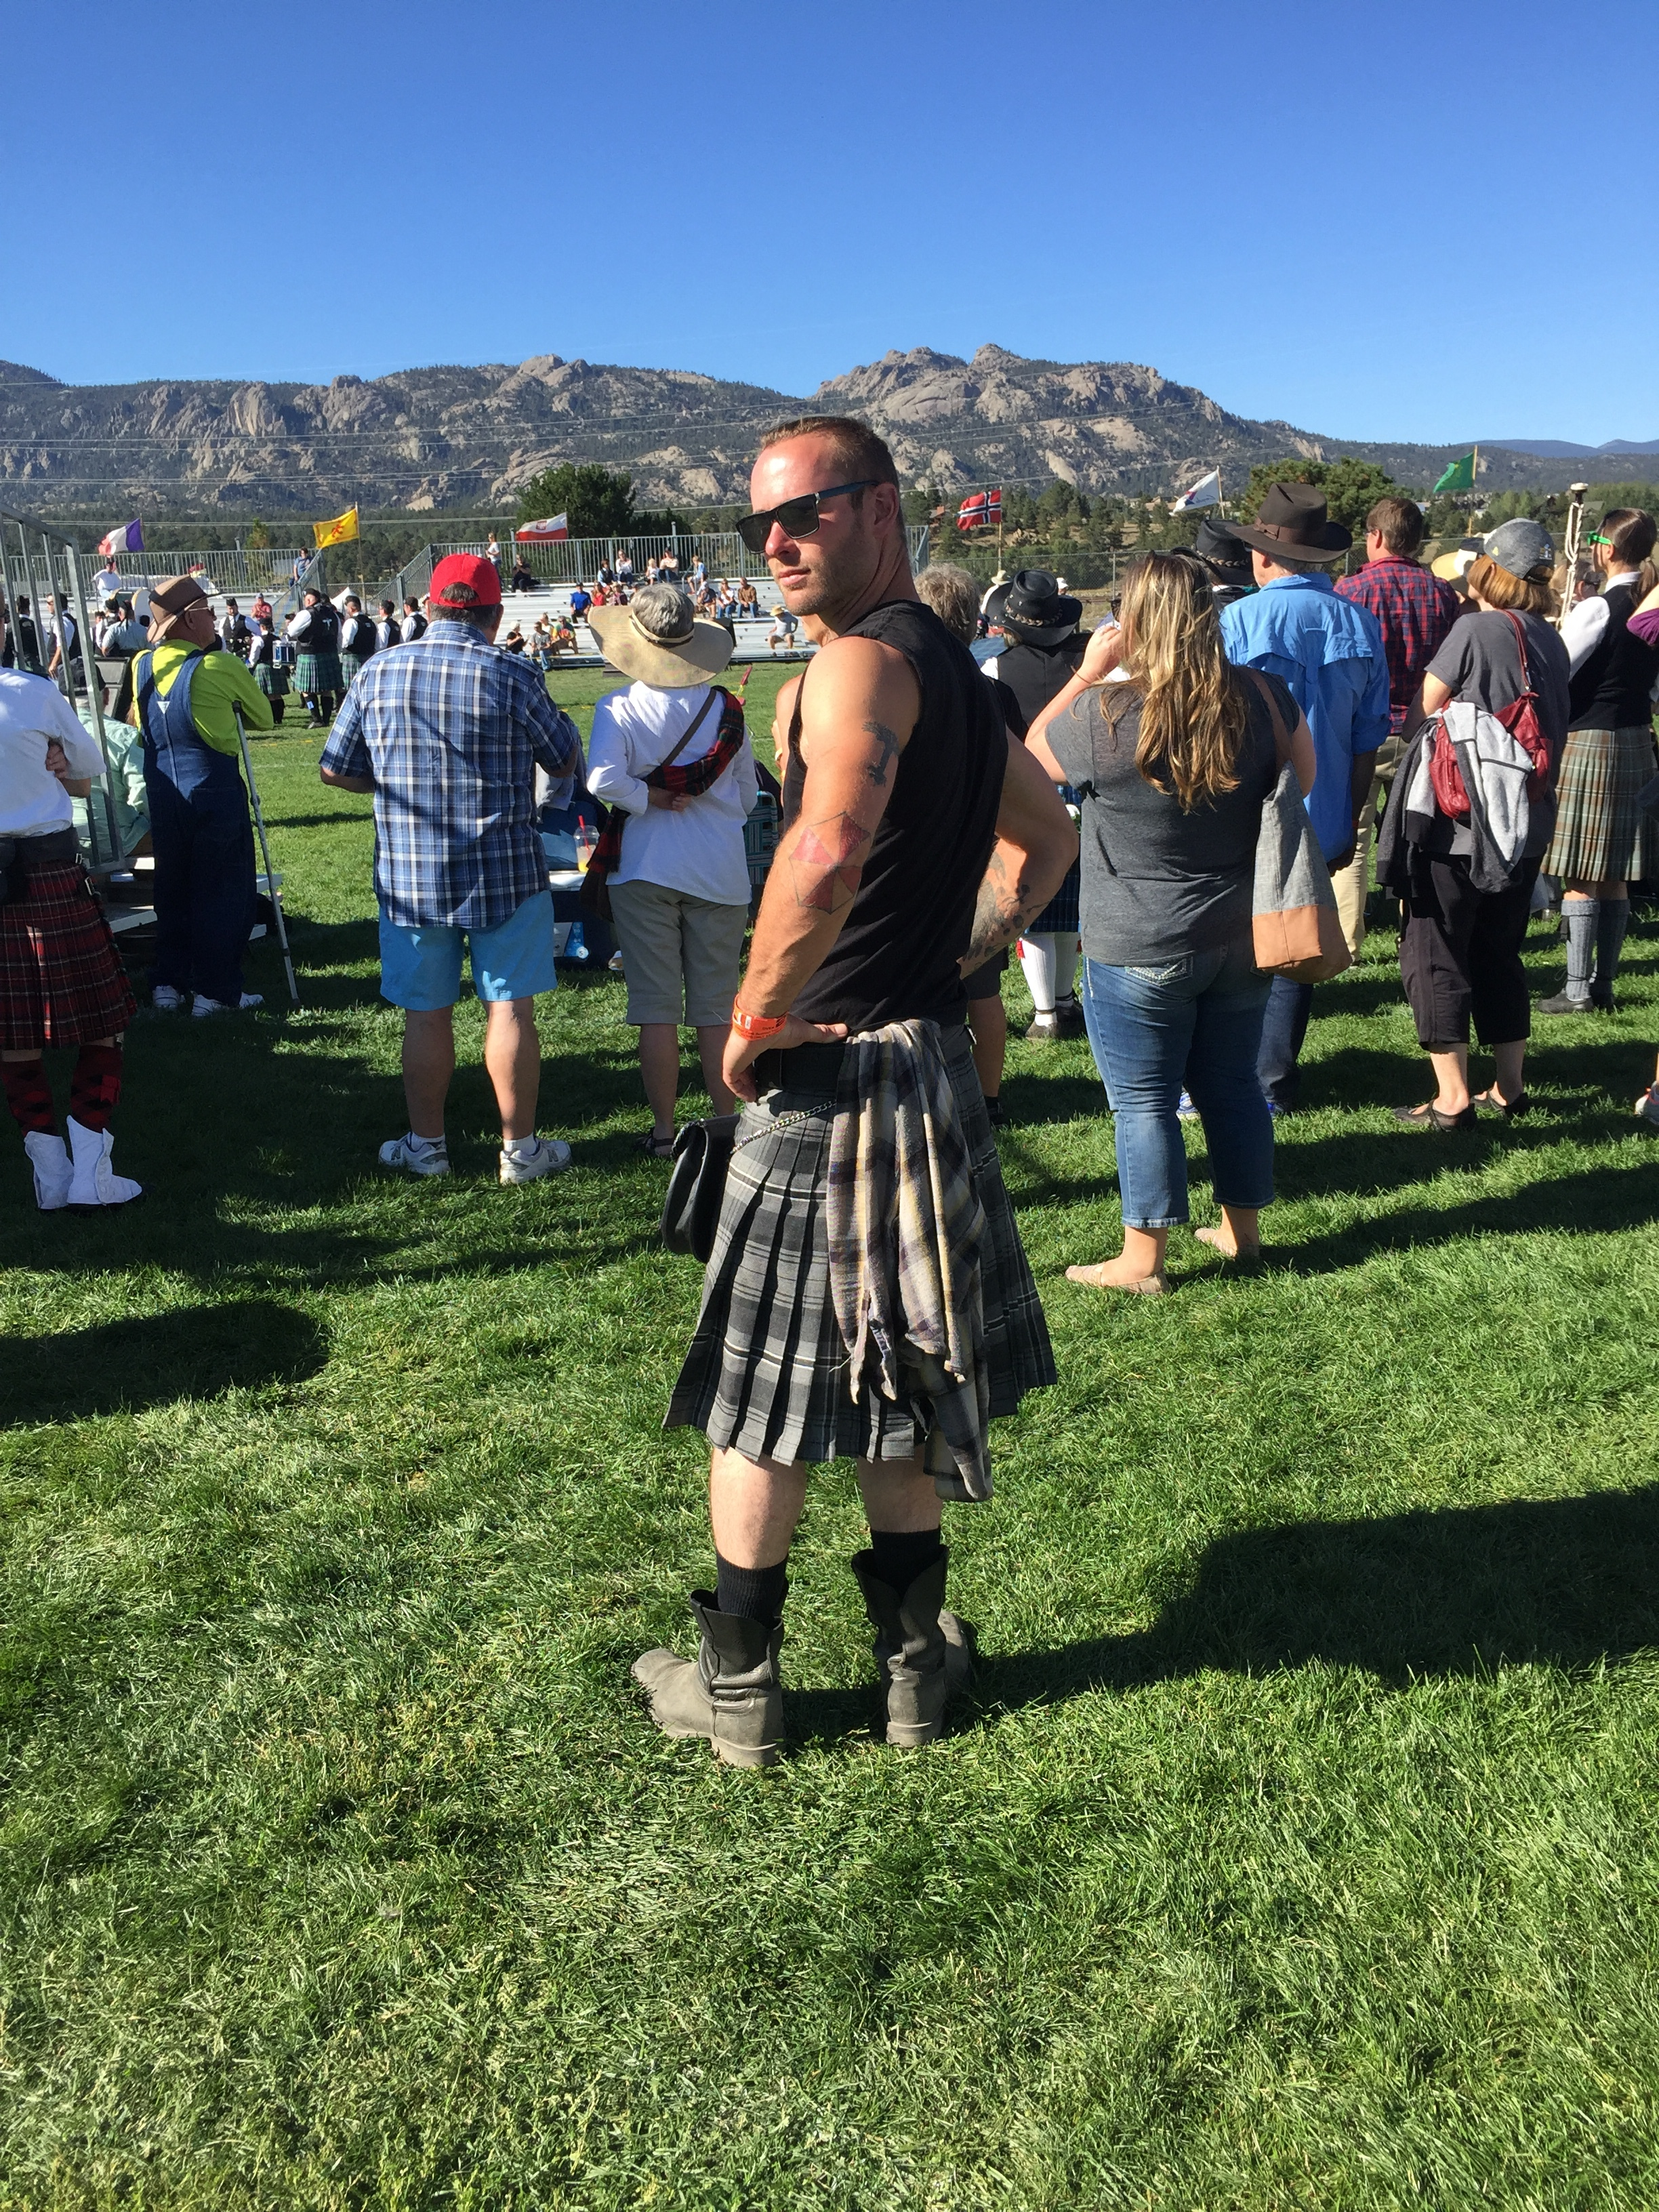 Kilts optional at the Highland Festival